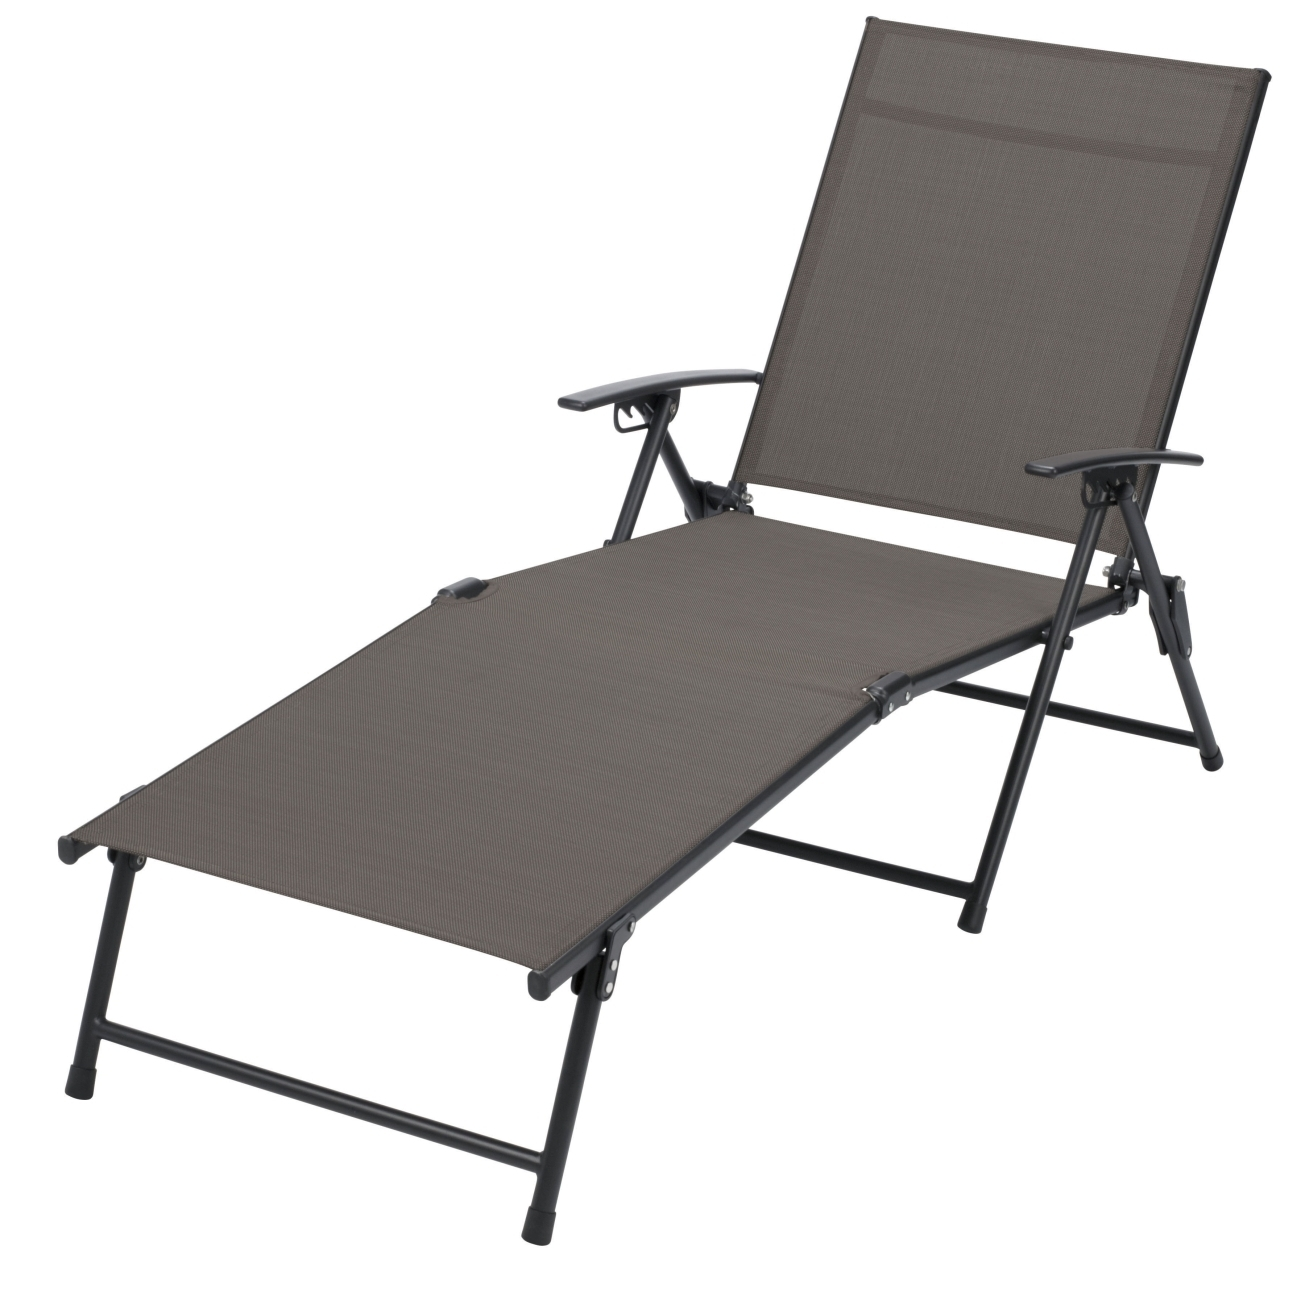 Folding Chaise Lounge Lawn Chairs Intended For Popular Inspirations: Tri Fold Beach Chair (View 12 of 15)